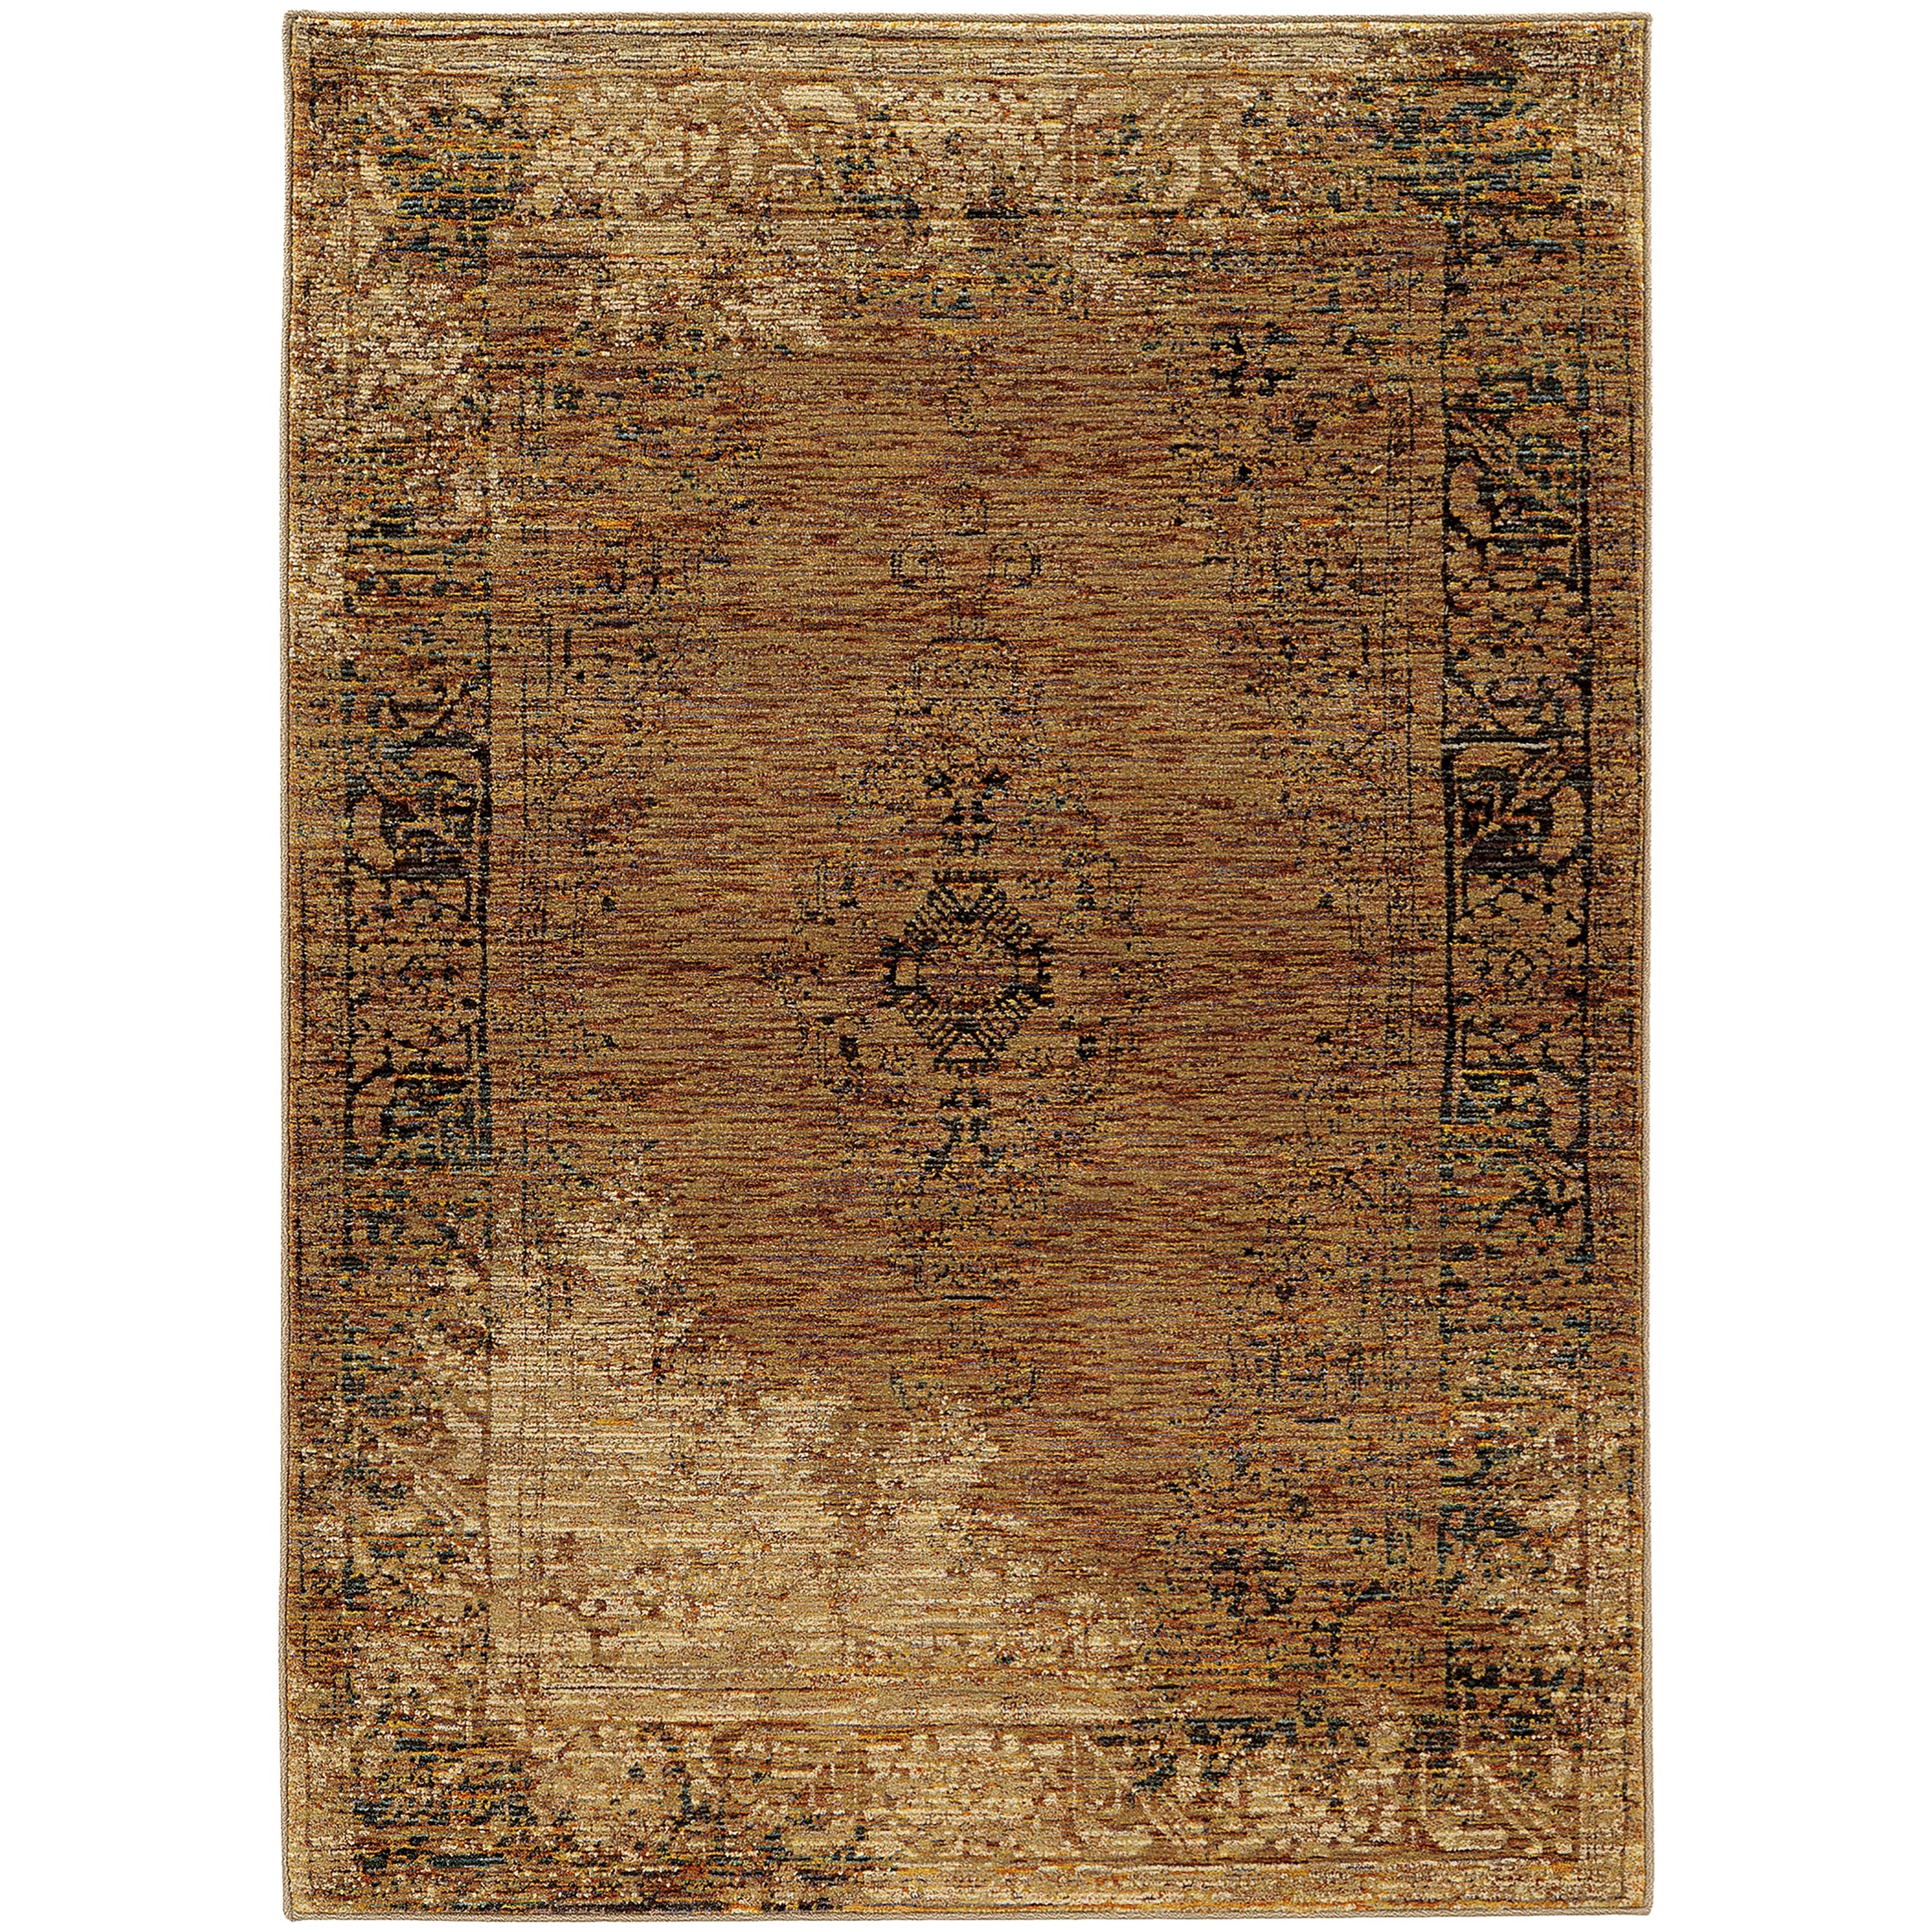 """Andorra 3' 3"""" X  5' 2"""" Casual Gold/ Brown Rectangle  by Oriental Weavers at Steger's Furniture"""